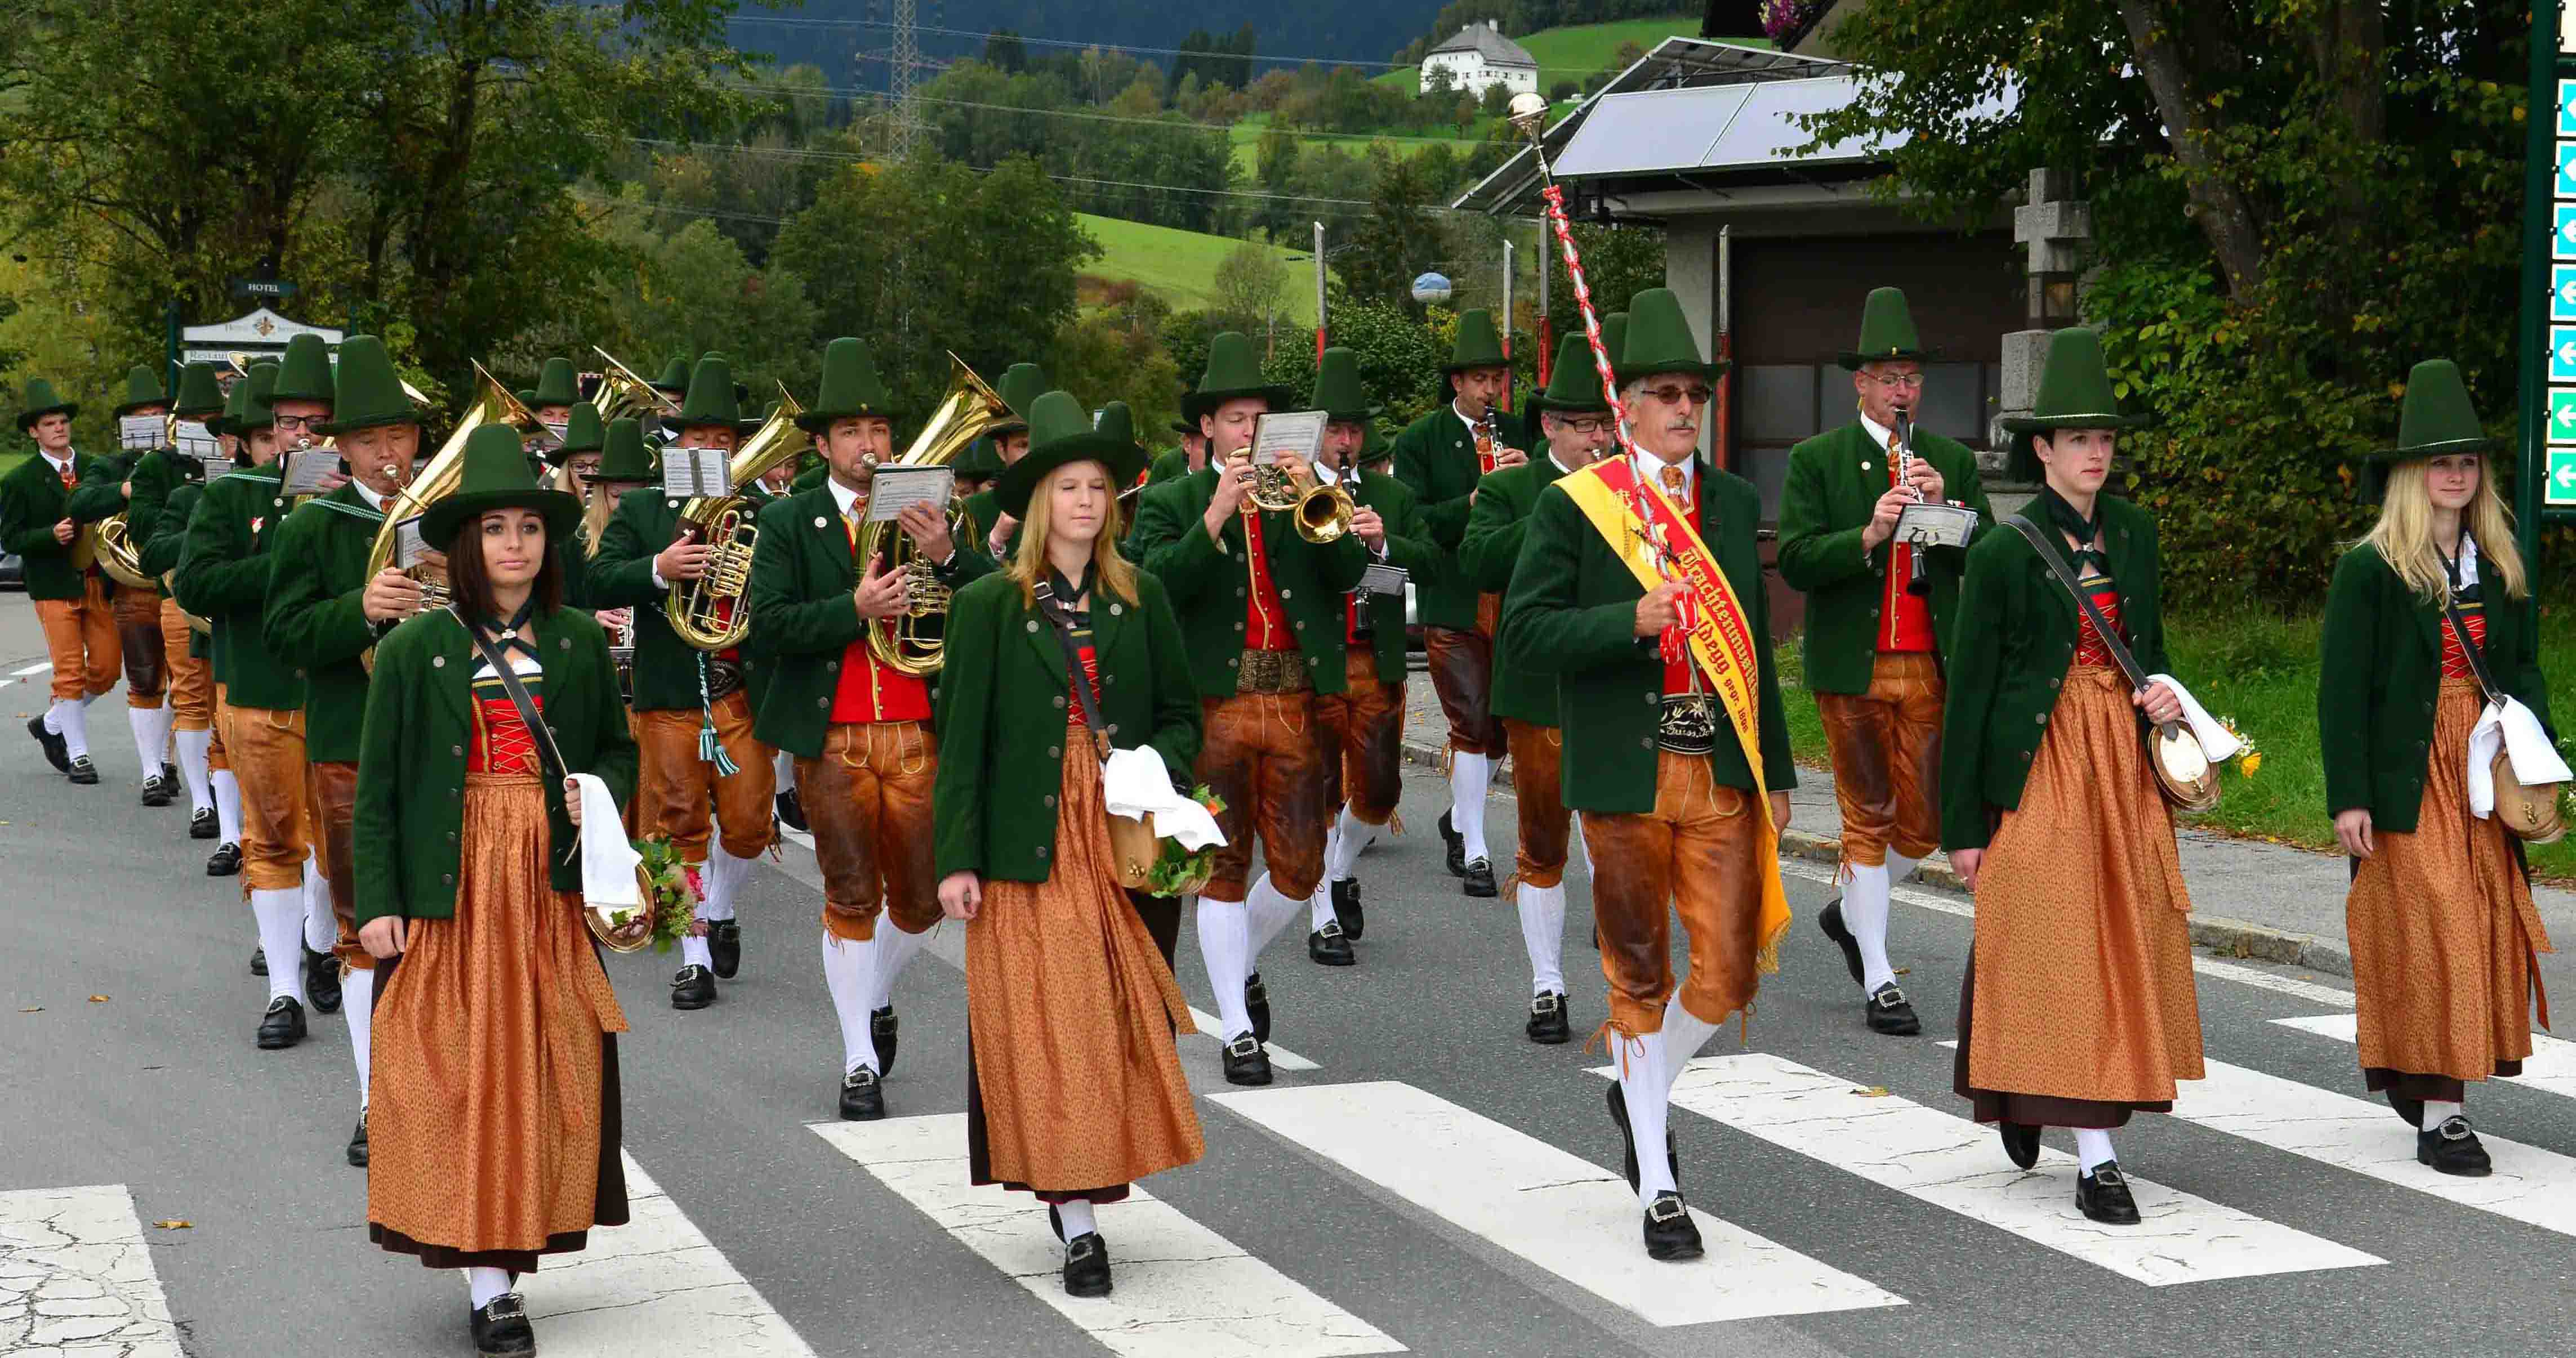 Square concert of the traditional music band Goldegg